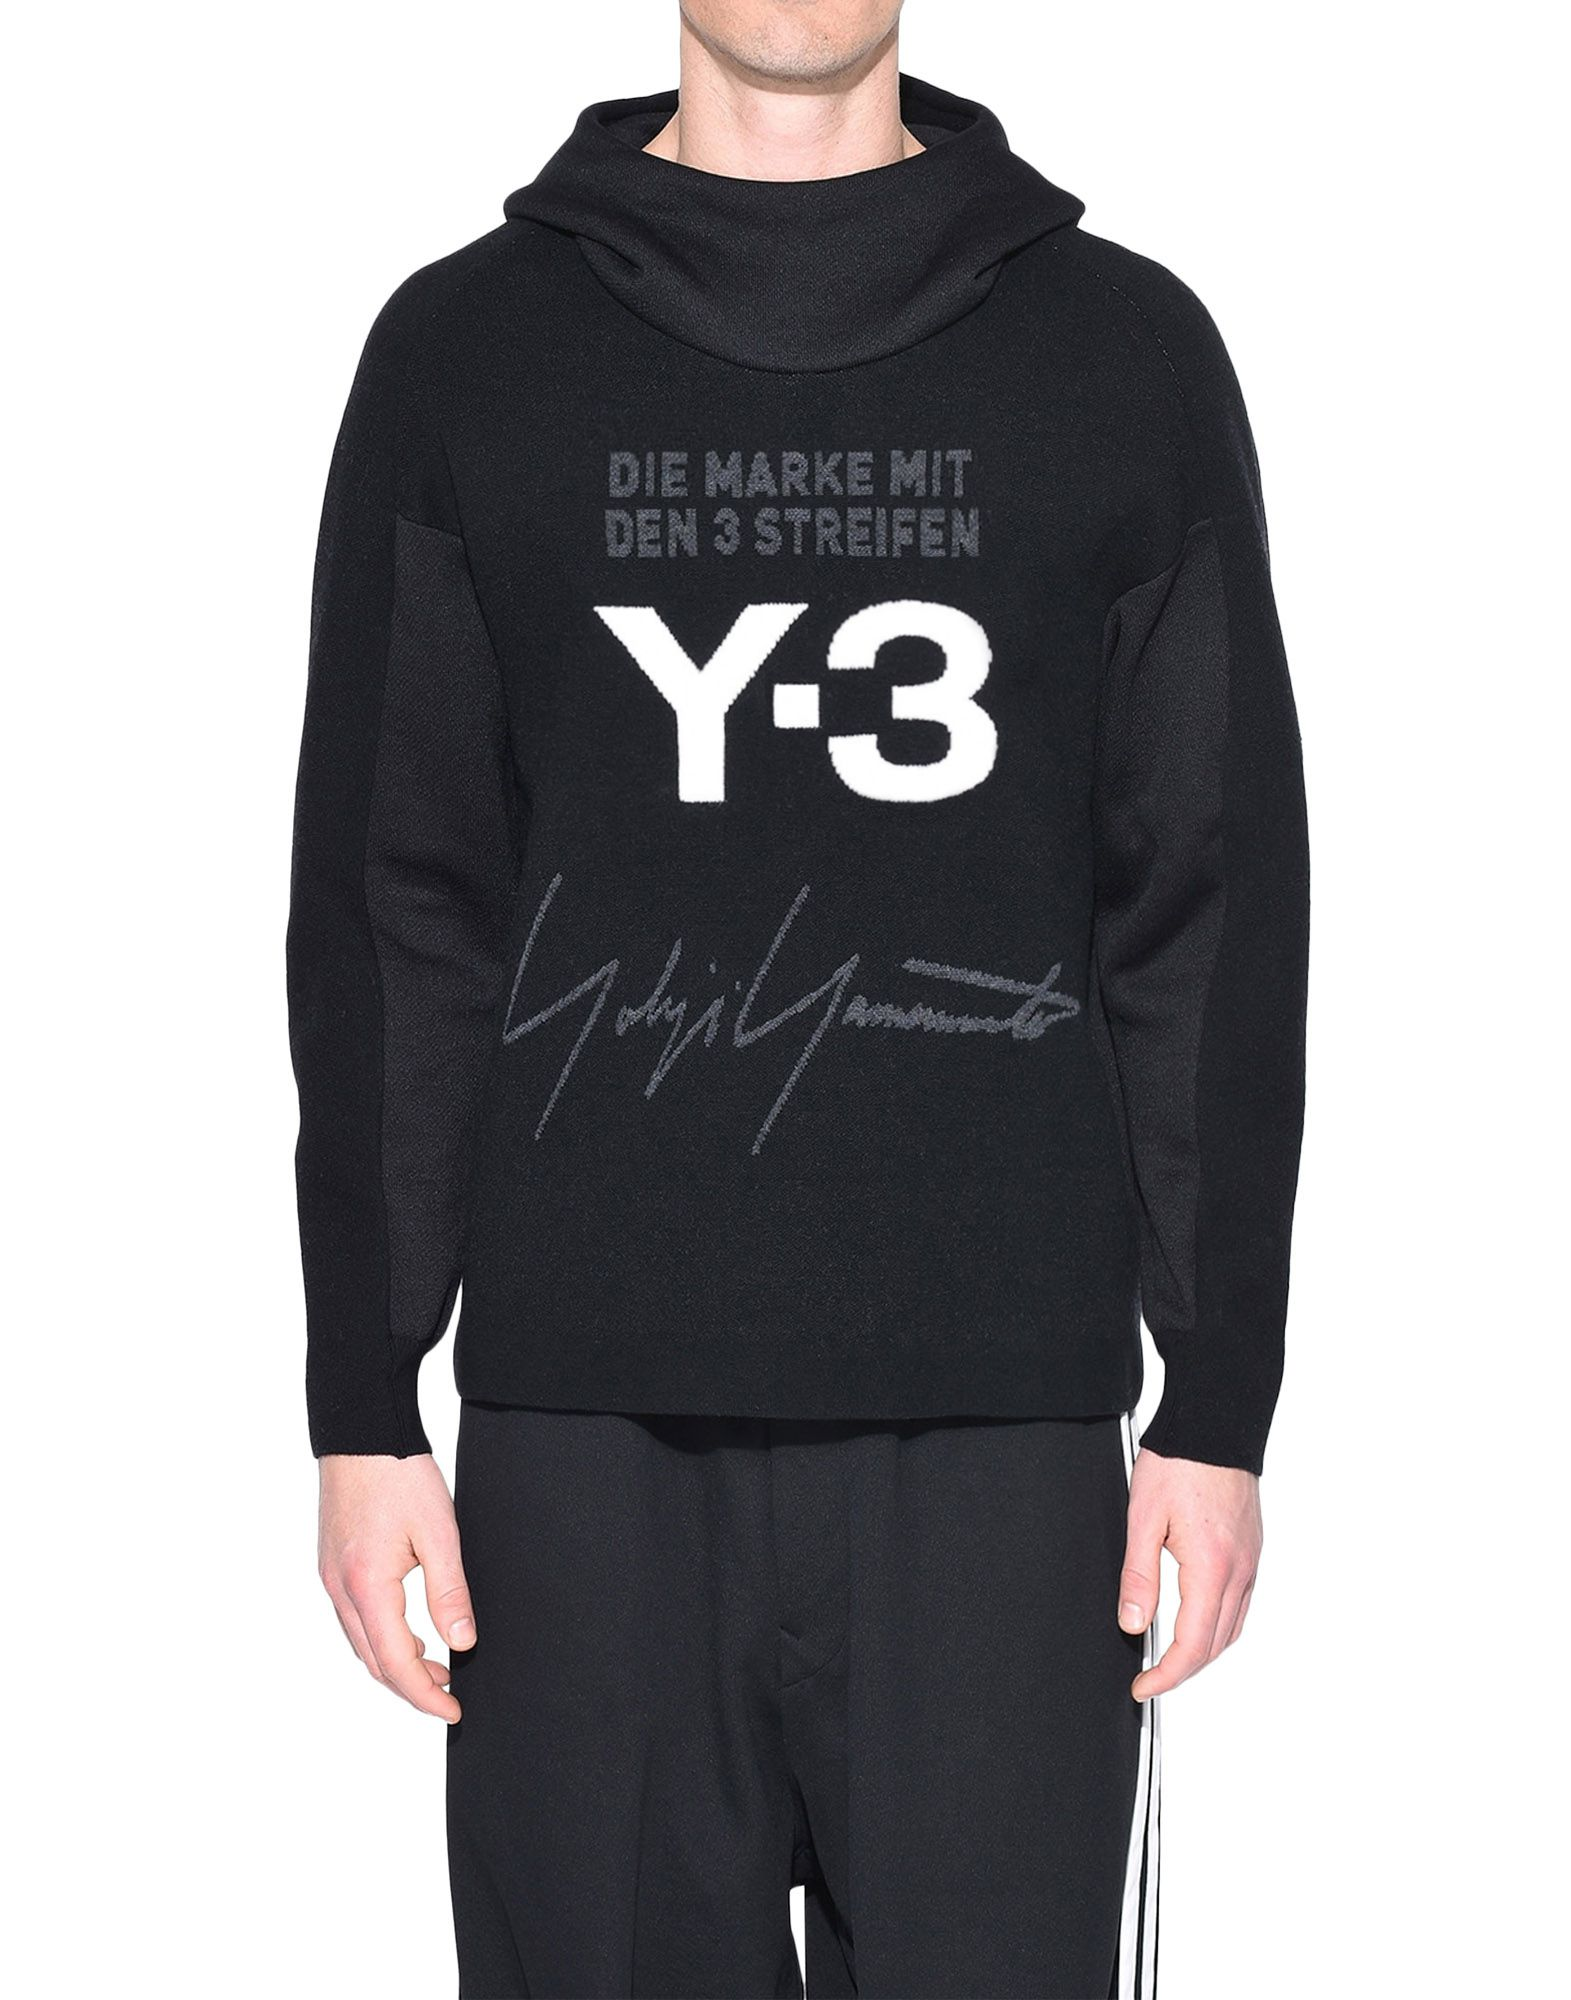 Y-3 Y-3 Knitted Stacked Logo Hoodie フード付きトレーナー メンズ r